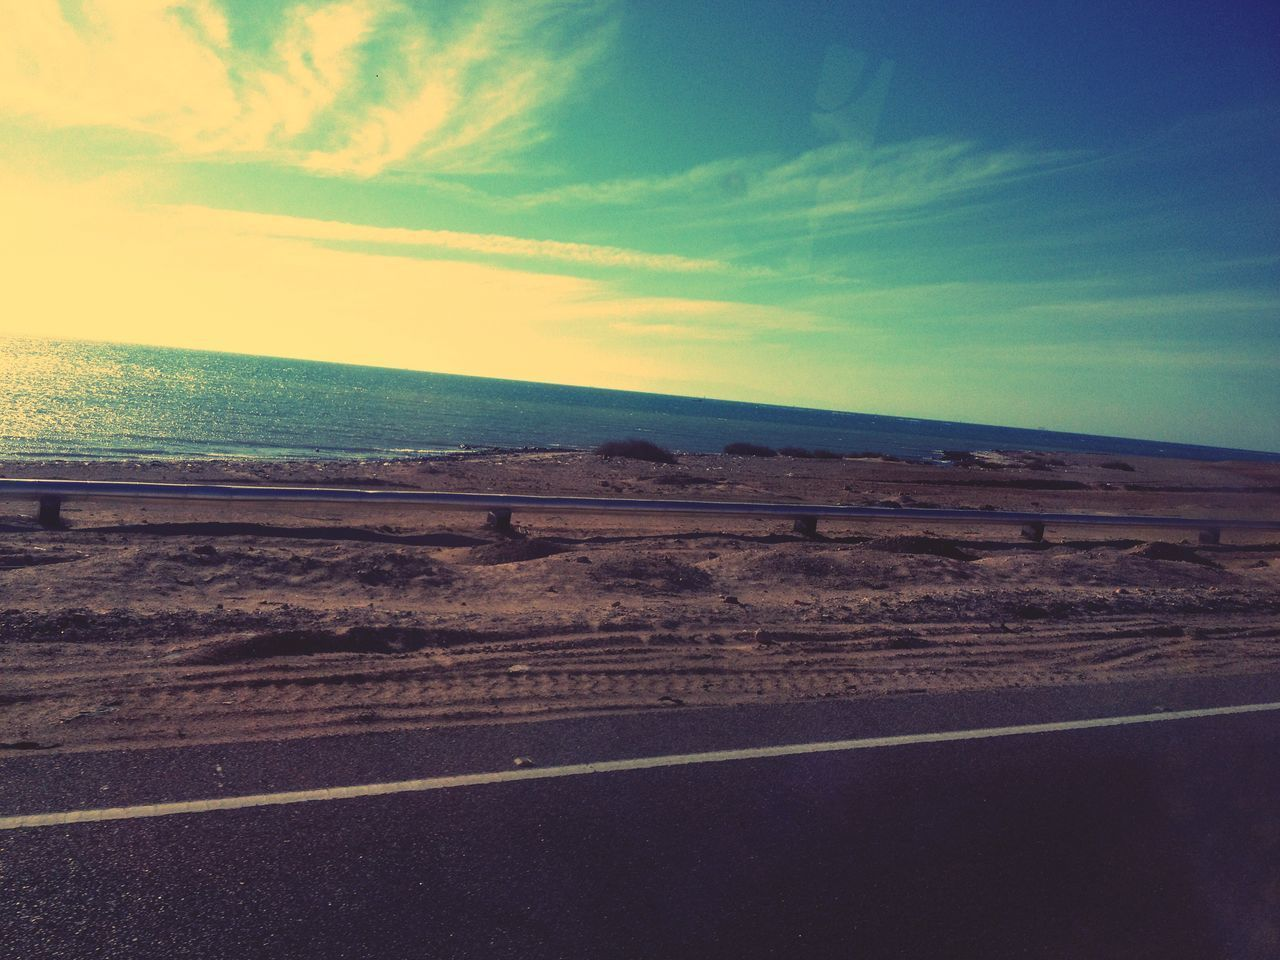 landscape, sky, tranquil scene, scenics, nature, road, tranquility, beauty in nature, cloud - sky, horizon over land, outdoors, transportation, no people, day, desert